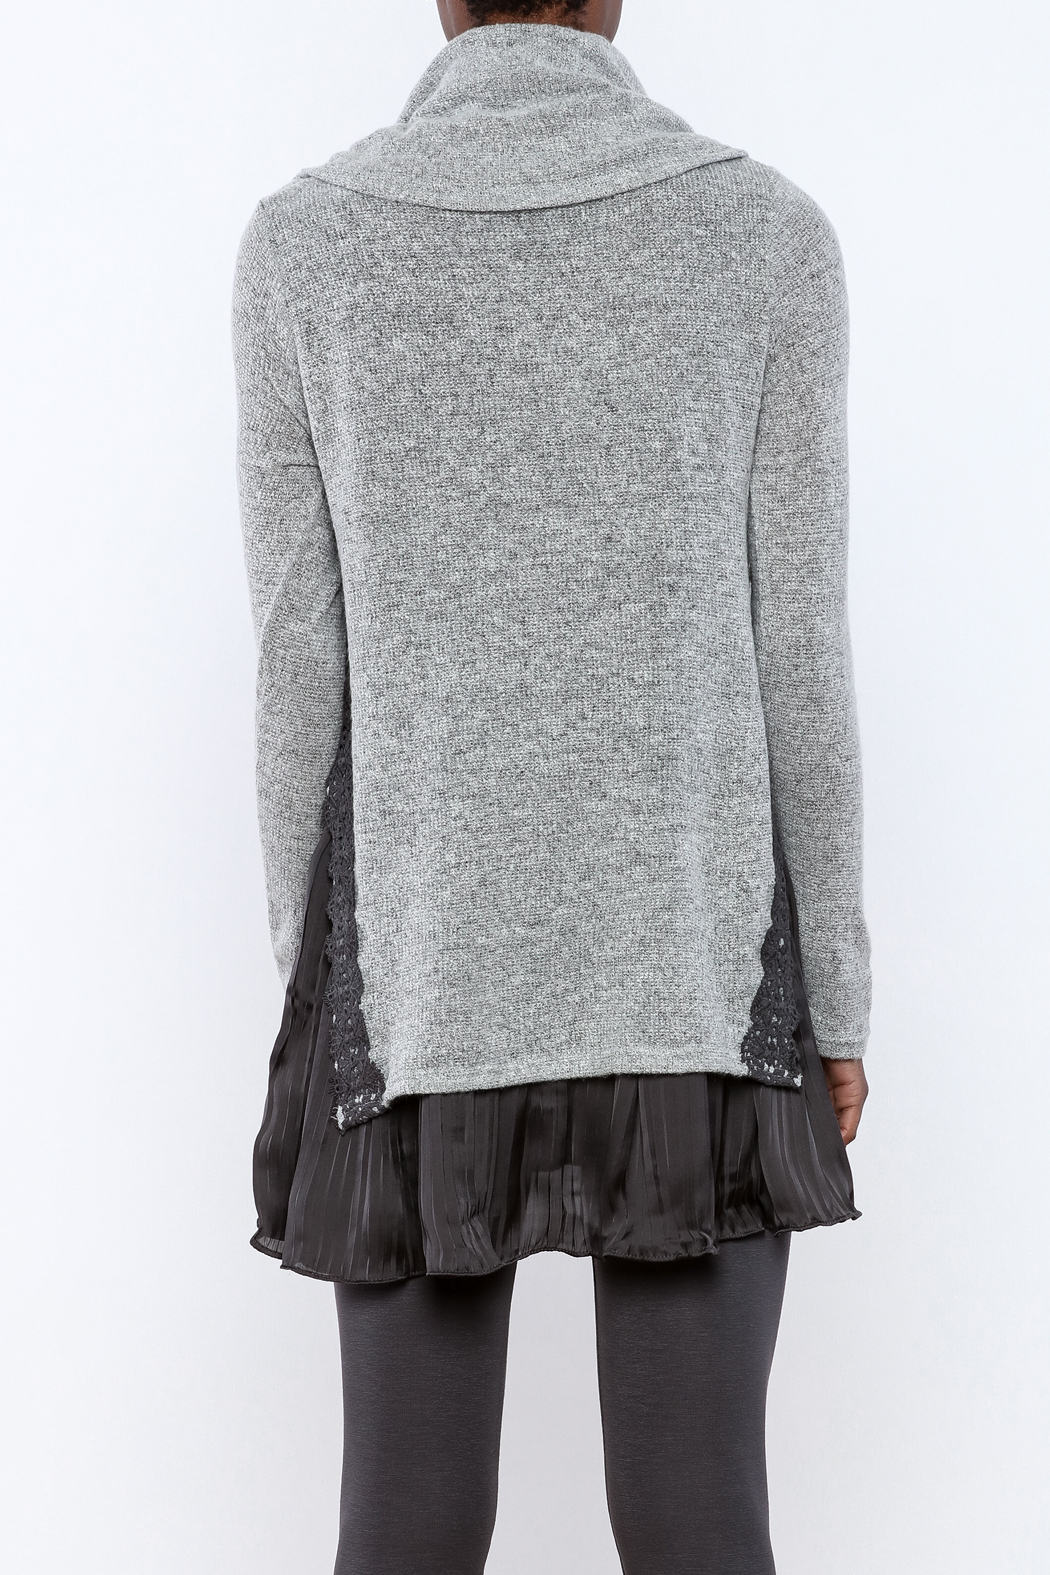 The Vintage Valet Grey Cowl Neck Sweater from Pittsburgh — Shoptiques